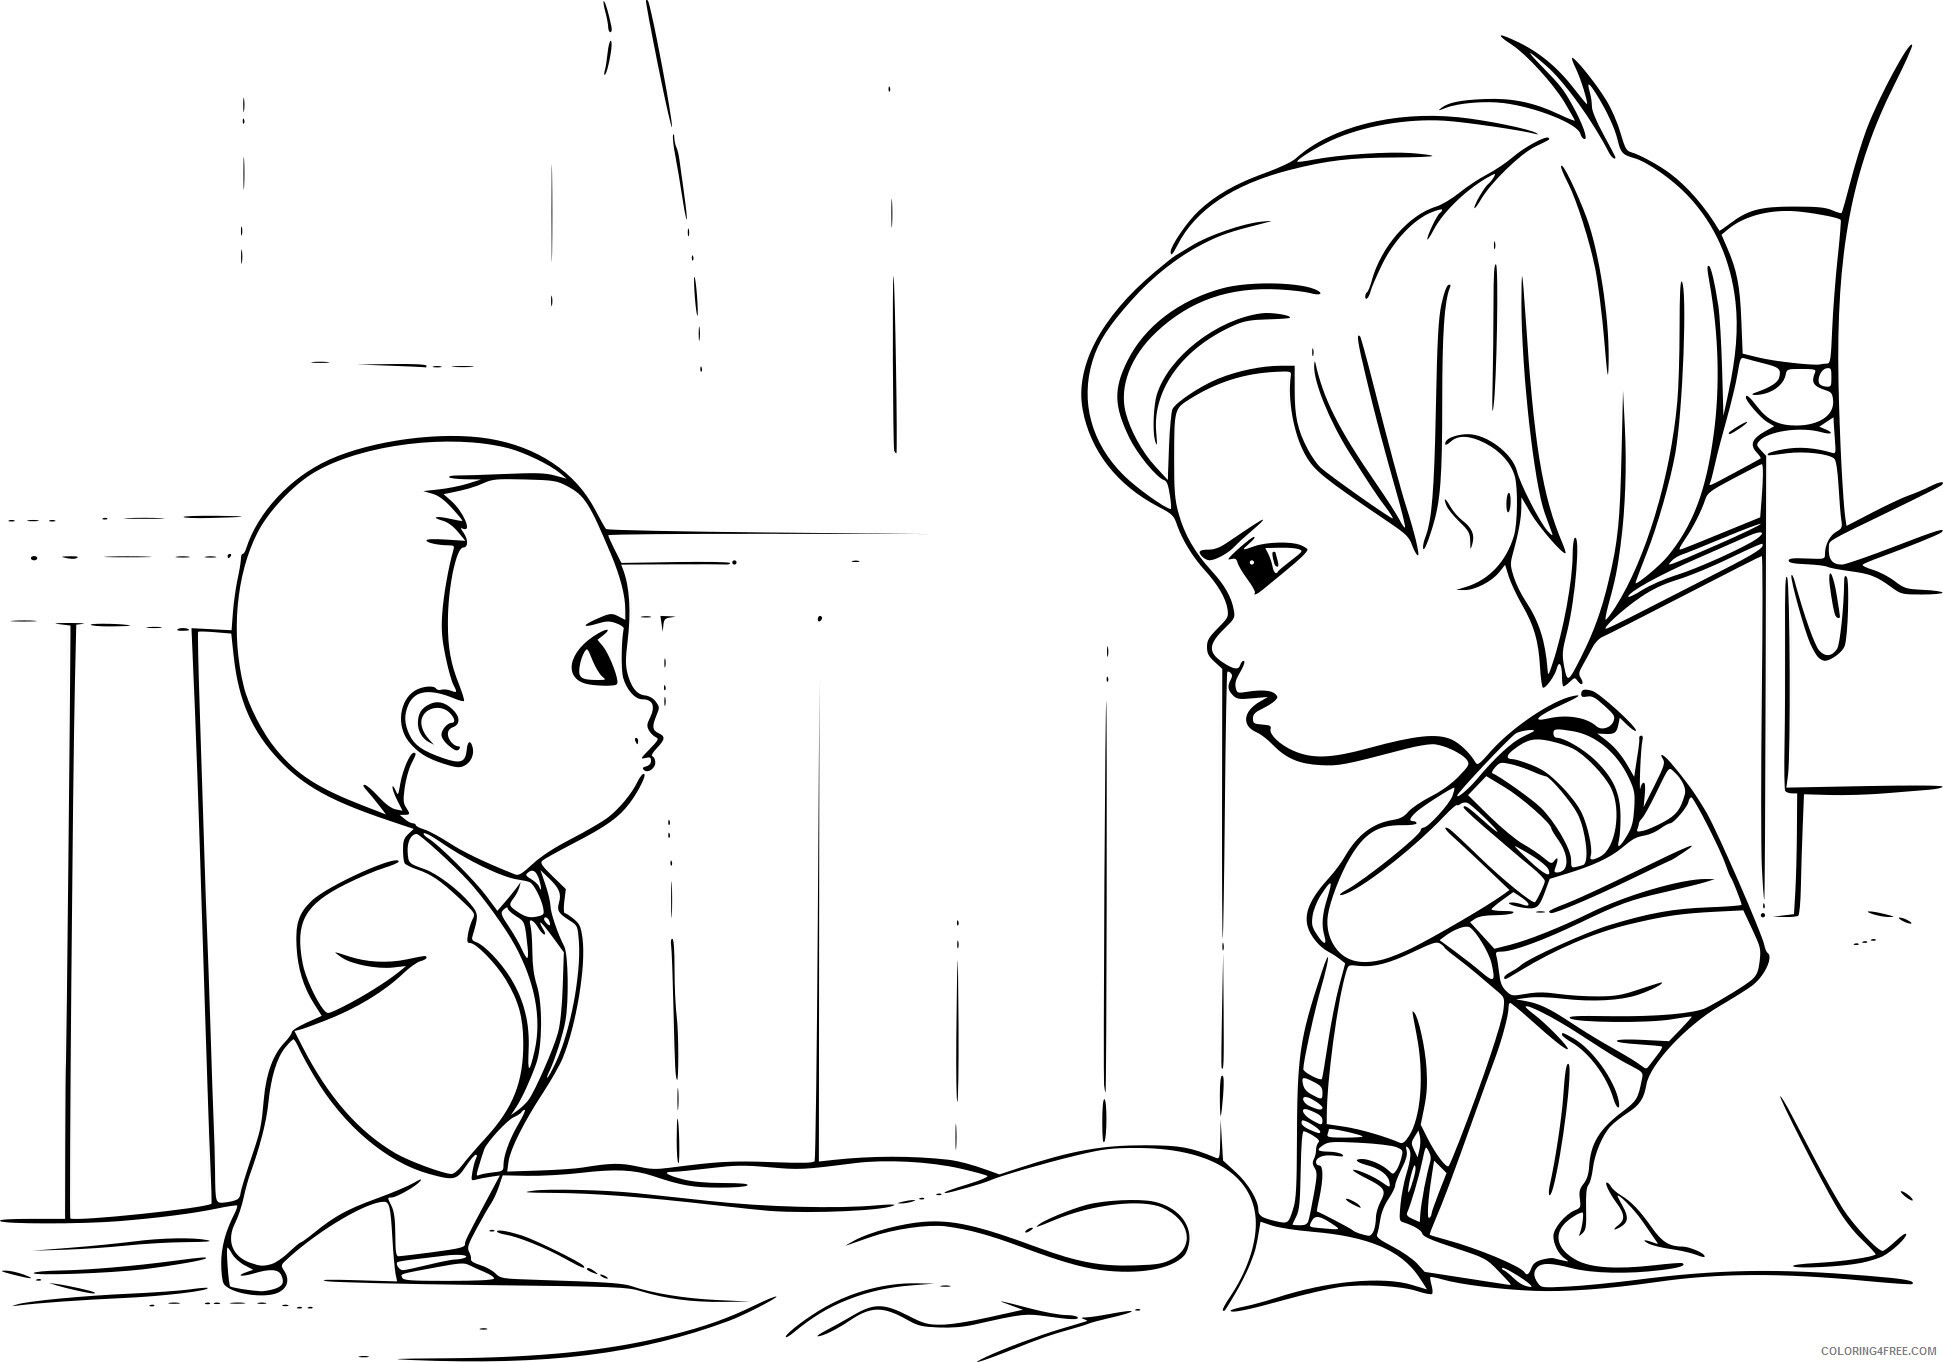 Boss Baby Coloring Pages TV Film coloriagetimbabyboss Printable 2020 01260 Coloring4free